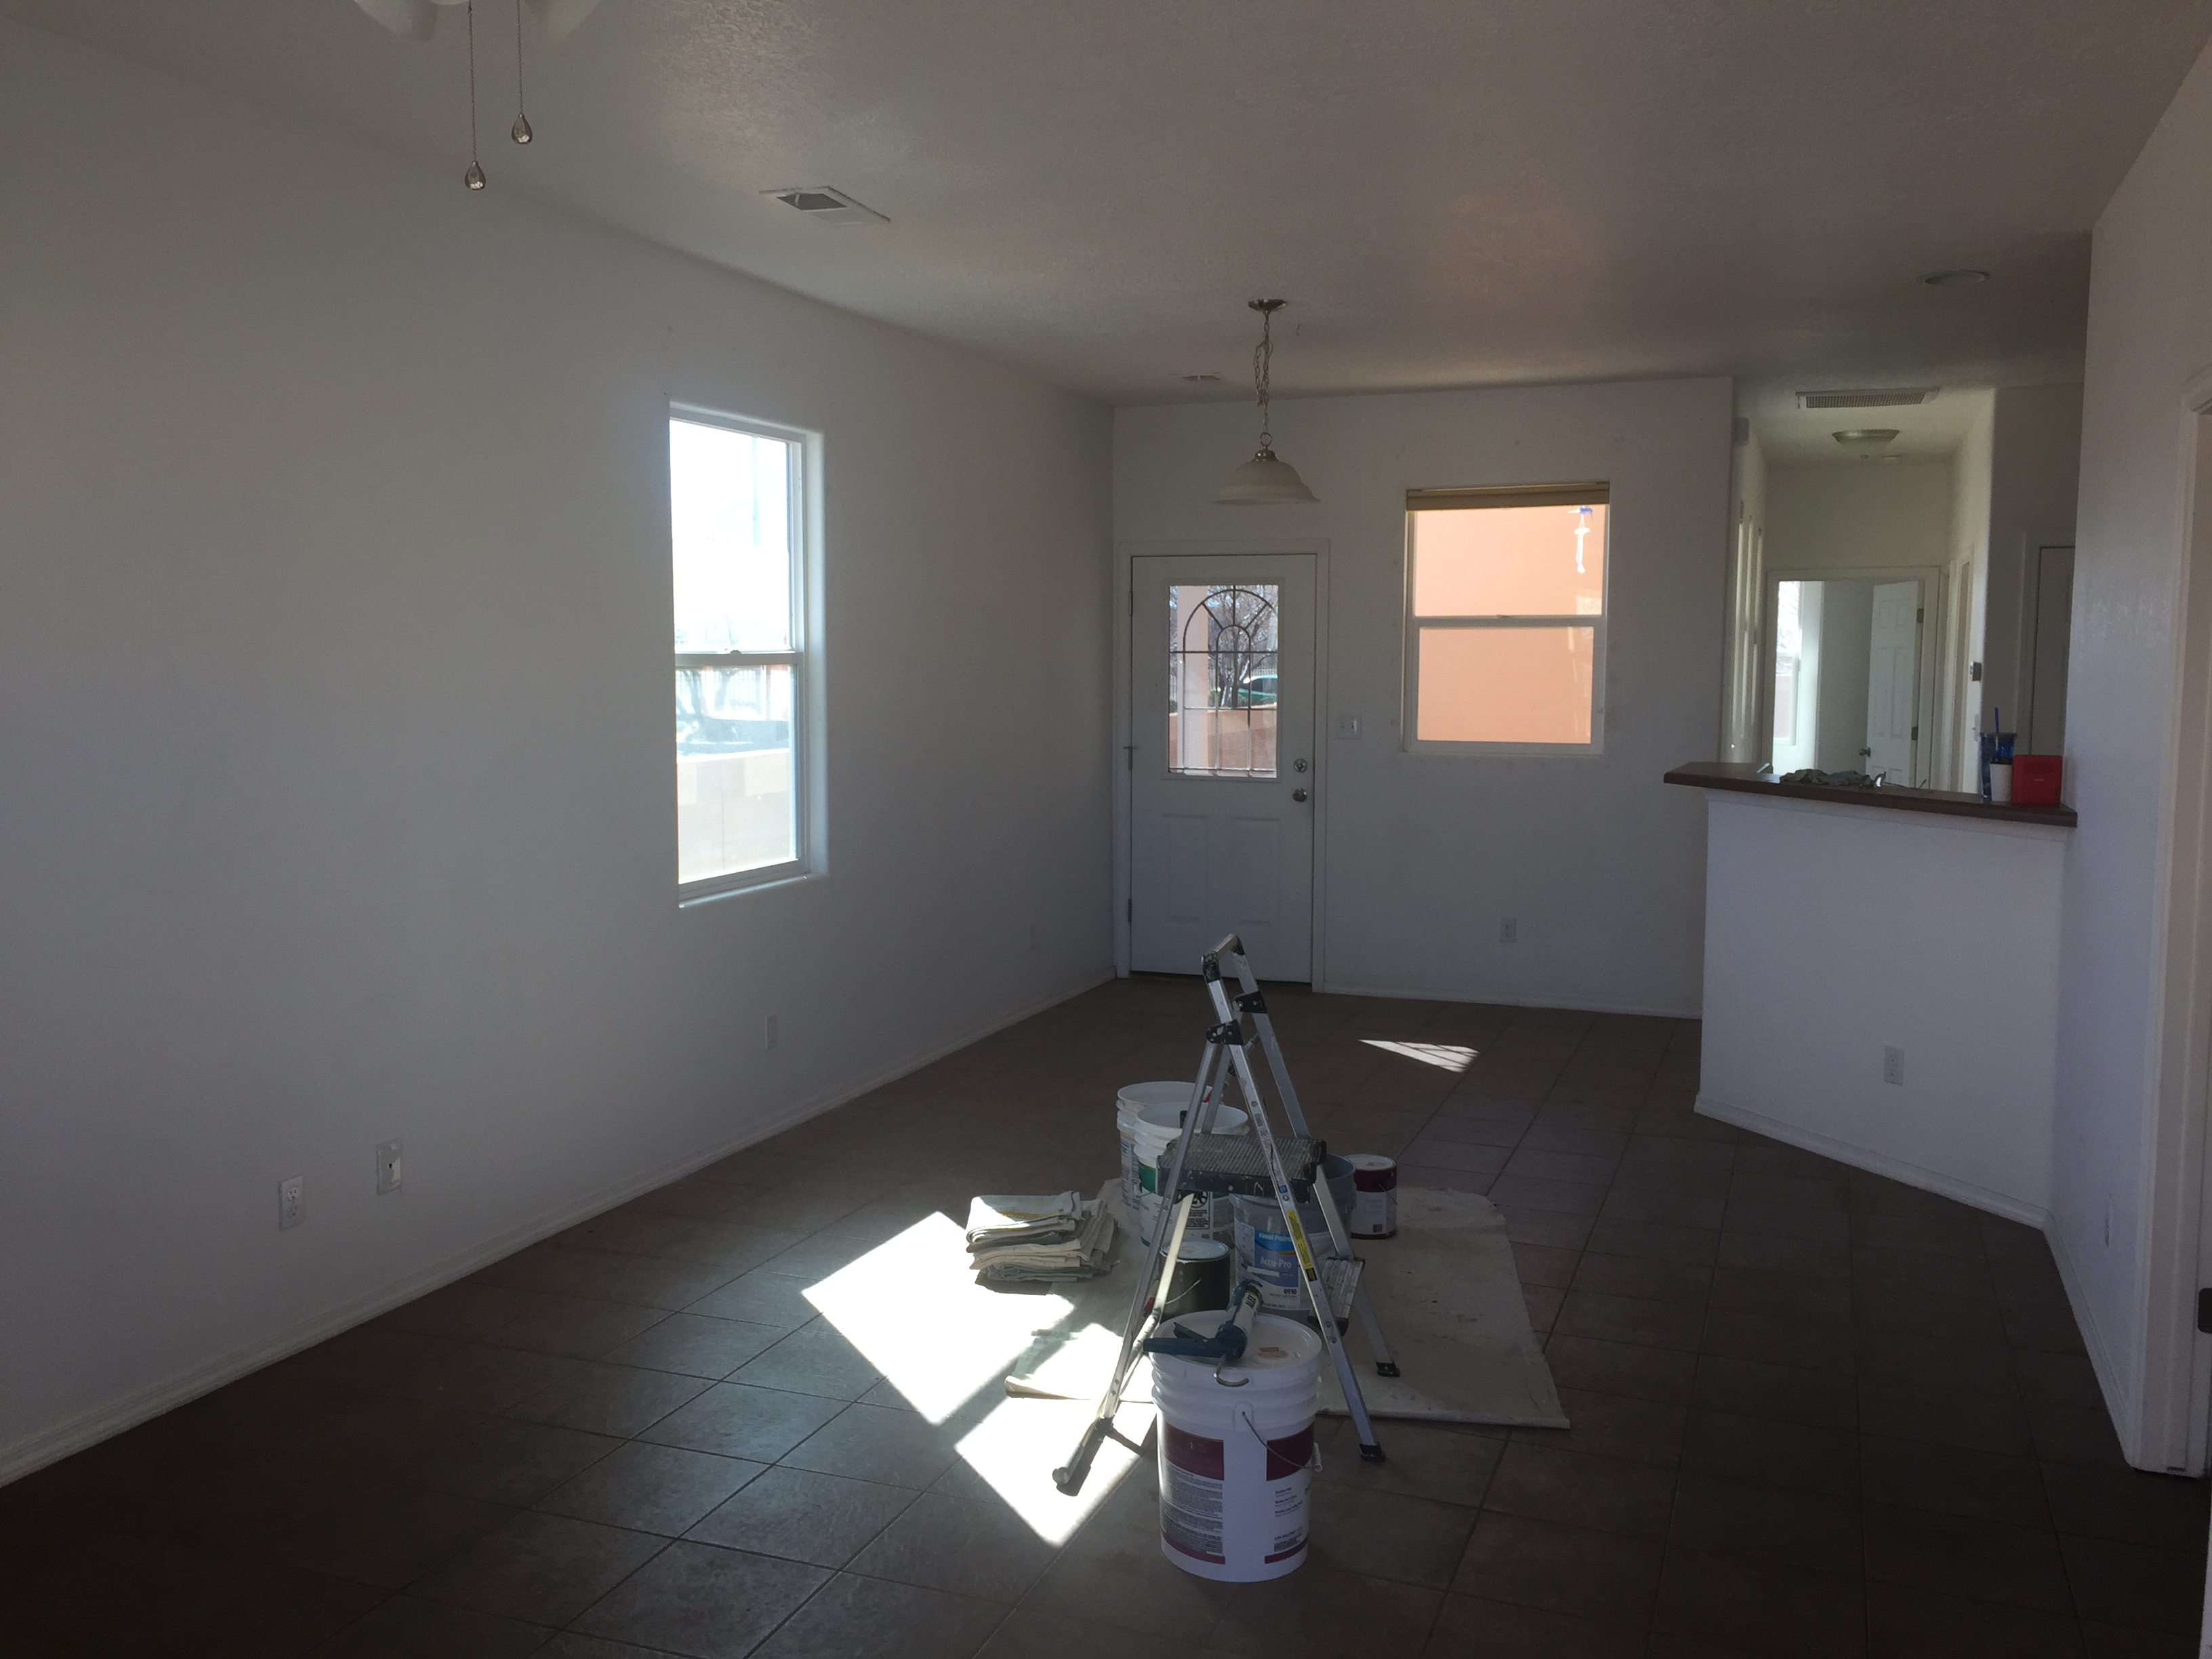 Watch This Local Albuquerque Interior Transform With A Paint And Glazes Job Done By Precision